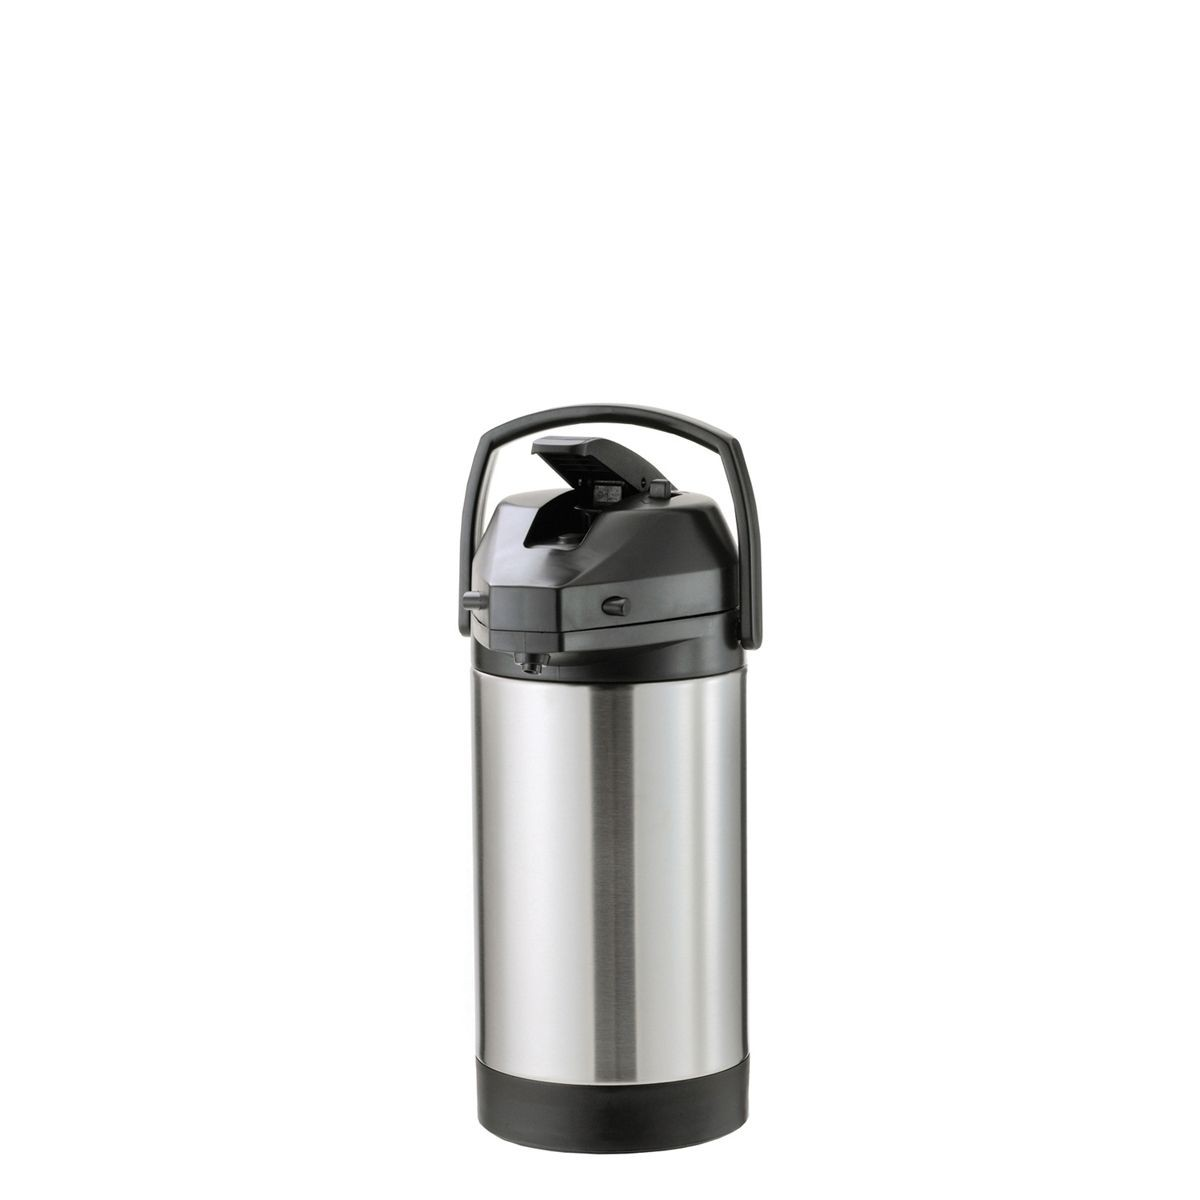 Service Ideas SVAP25L Economy Airpot with Interchangeable Lever Lid, Stainless 2.5 Liter